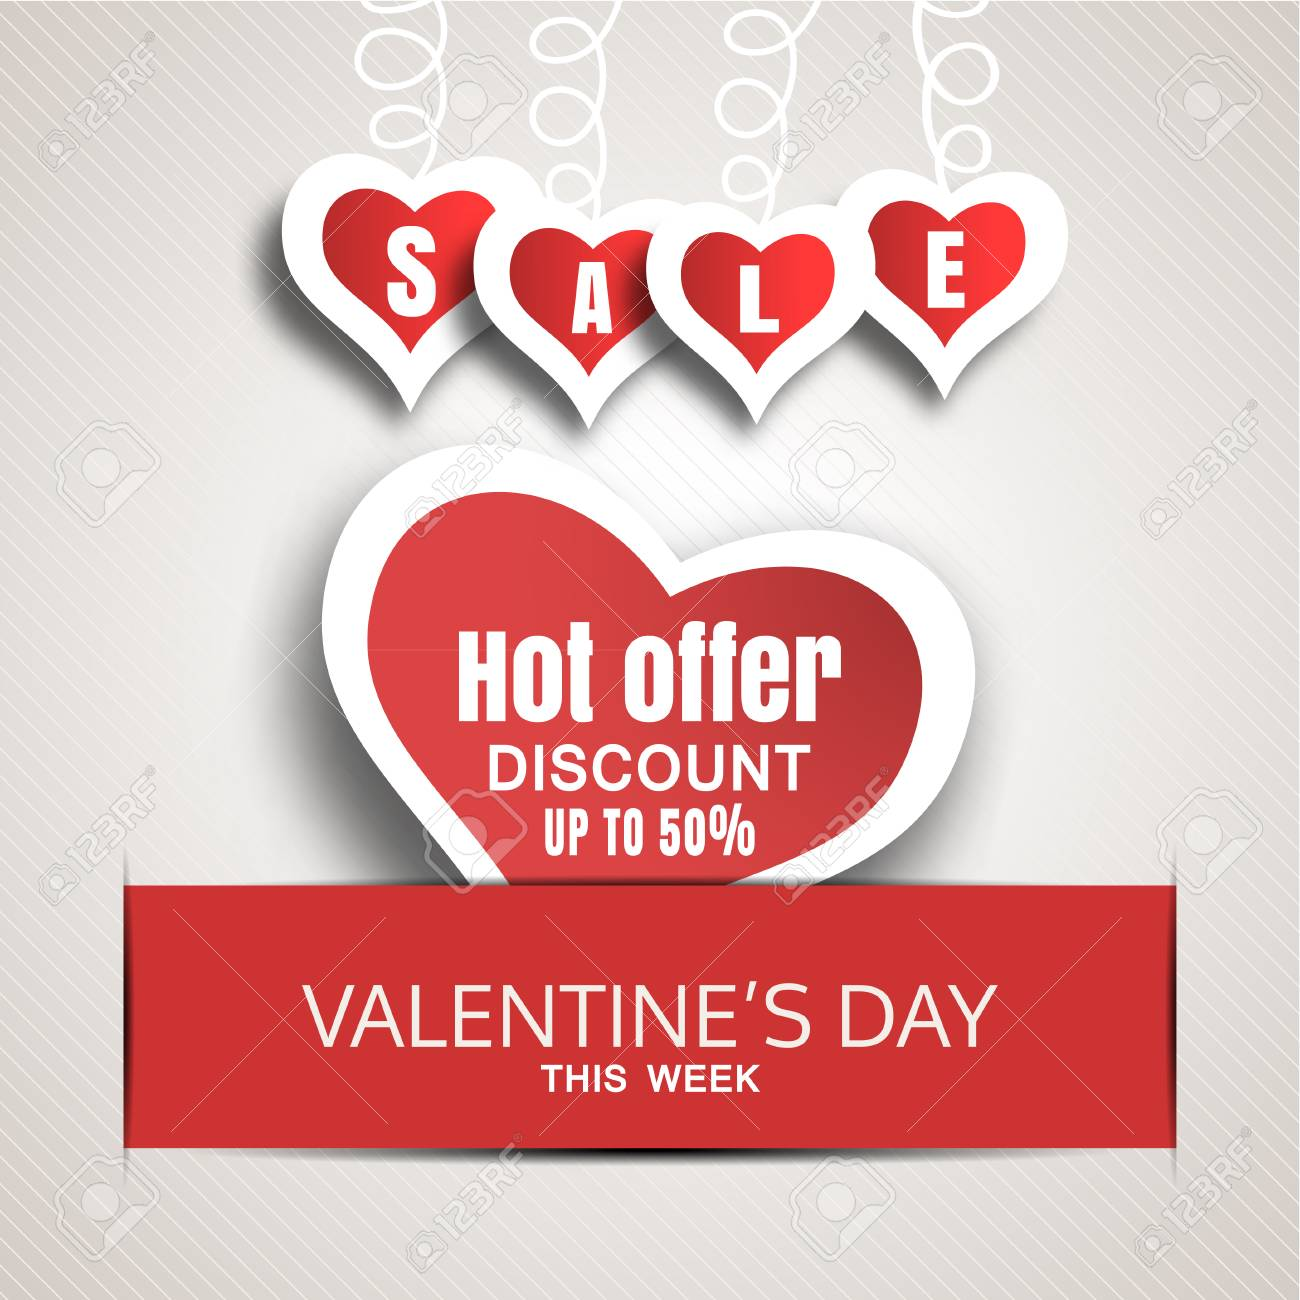 b521f78870 Vector - Vector promotional red poster of Happy Valentine s Day sale with  red paper heart insert in the red slot with shadow.